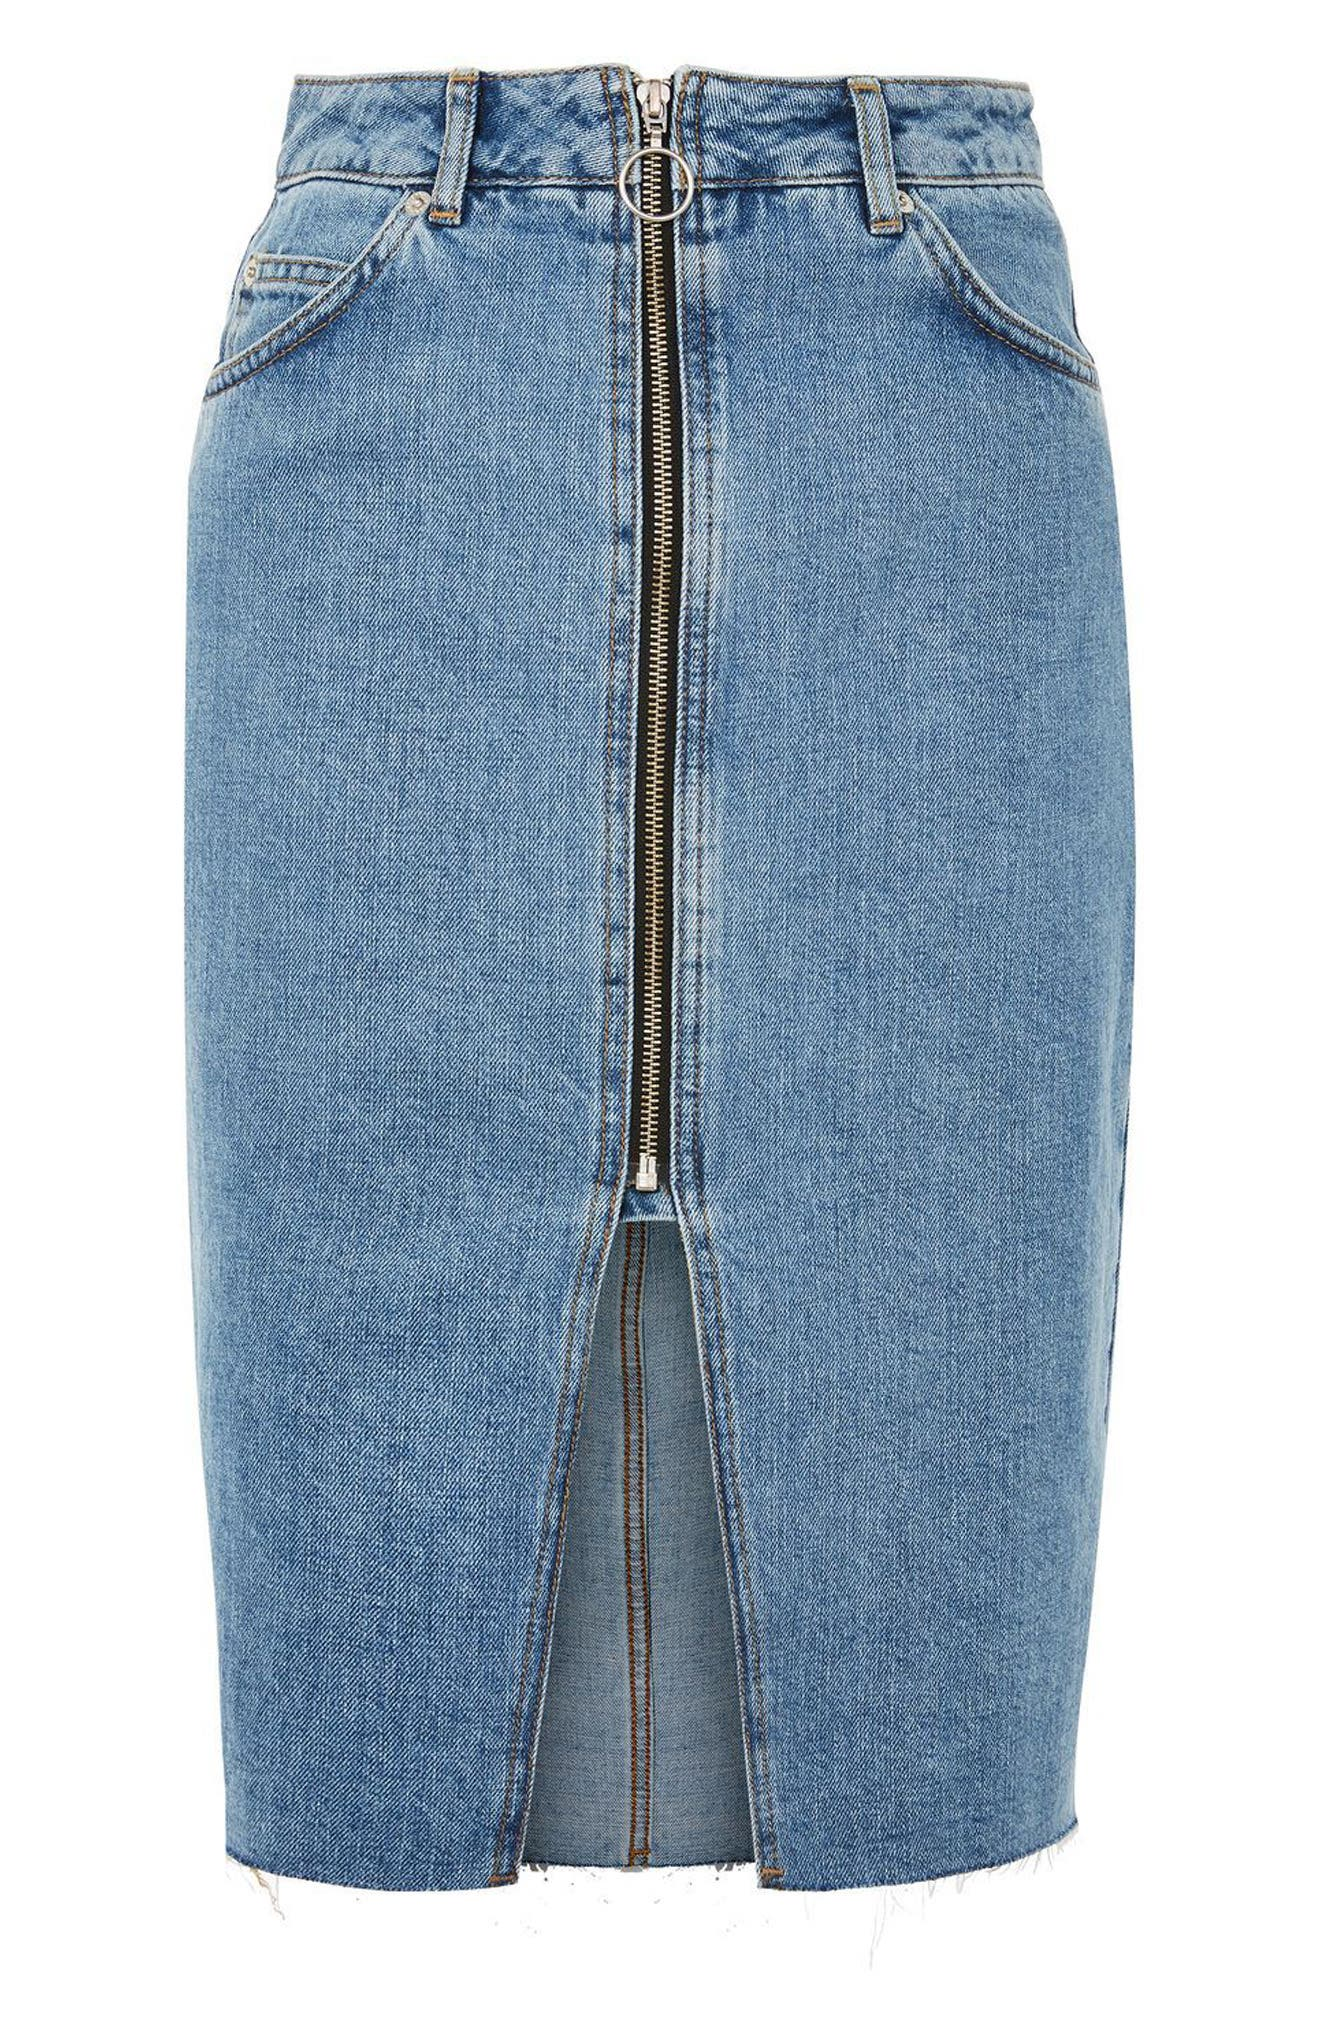 Topshop Zip Denim Skirt